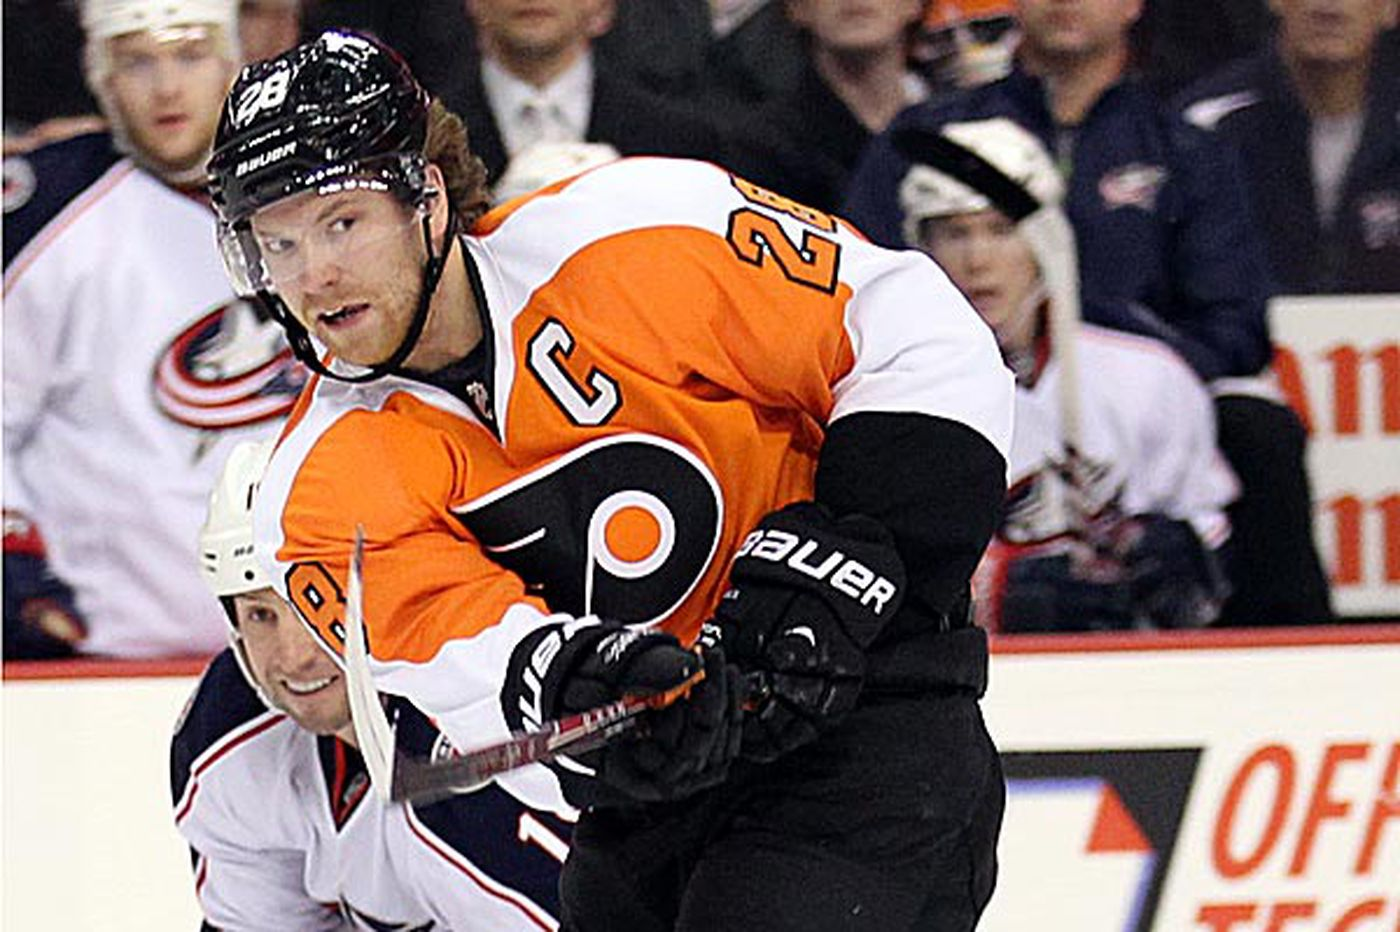 Inside the Flyers: With Giroux's resurgence, Flyers pick up steam